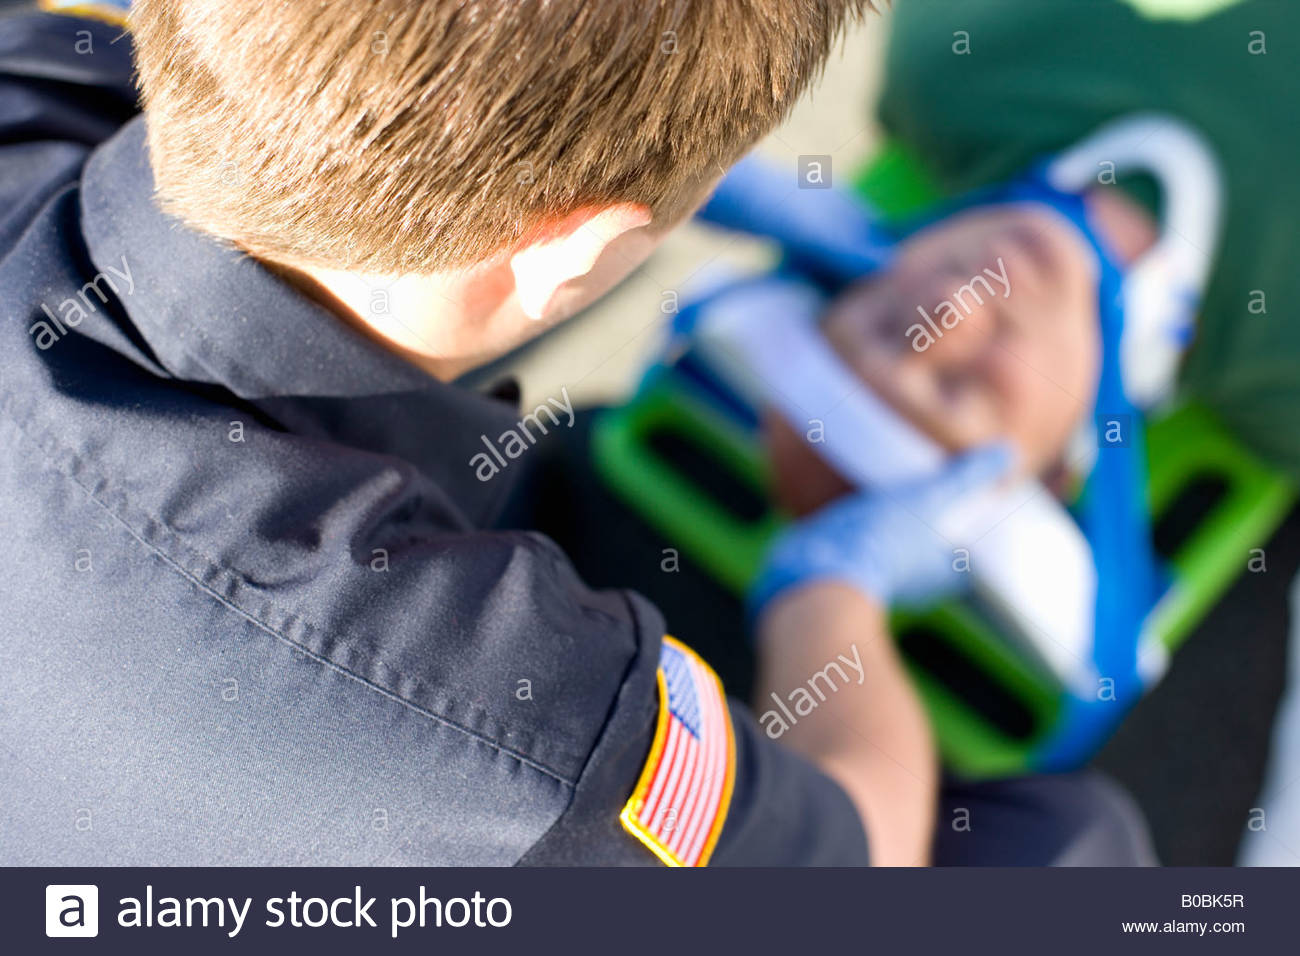 Paramedic helping man on stretcher with head in brace, elevated view - Stock Image